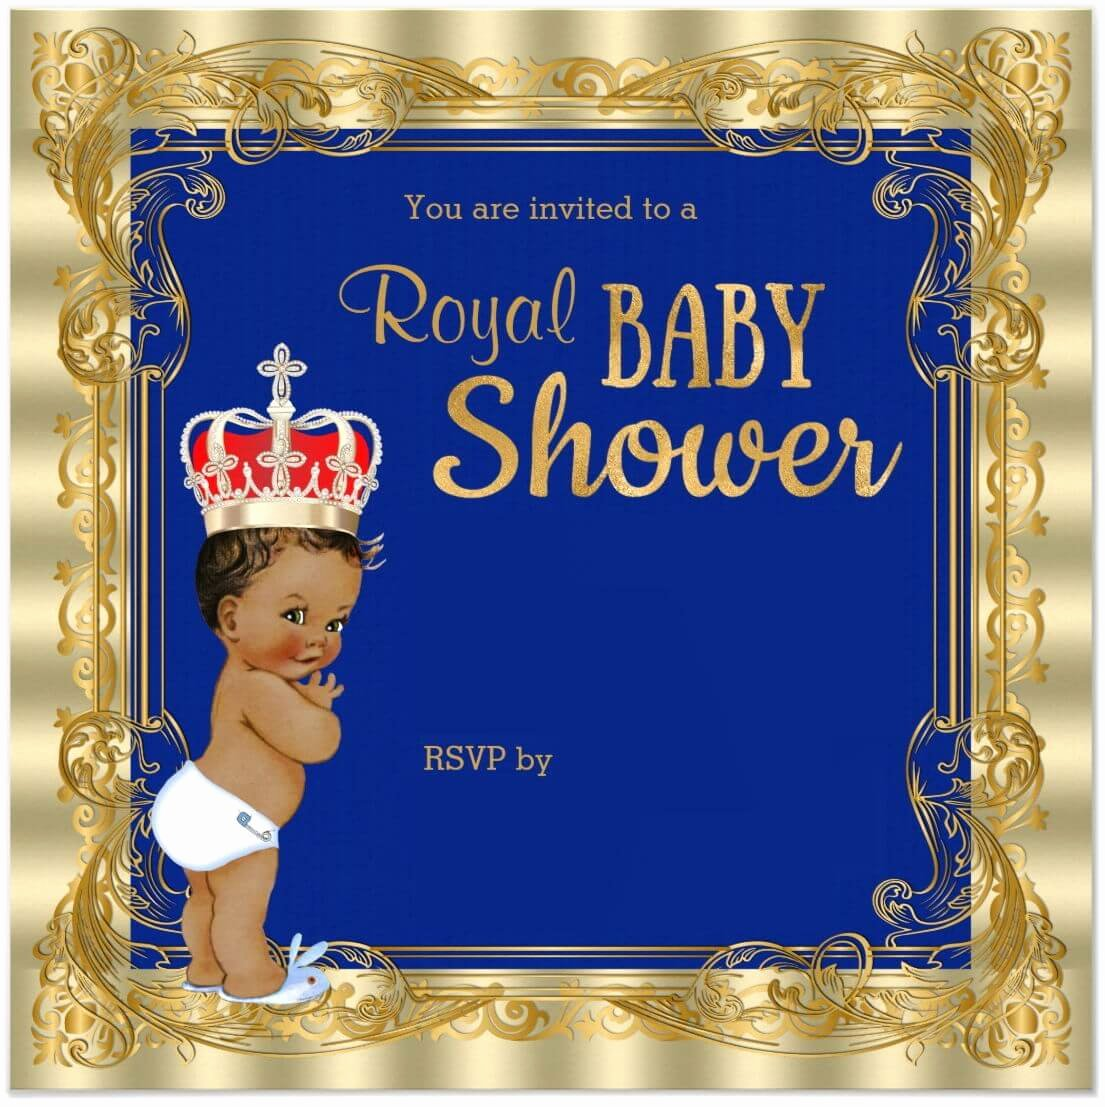 Royal Baby Shower Invitations Fresh Royal Baby Shower Printable Invitations